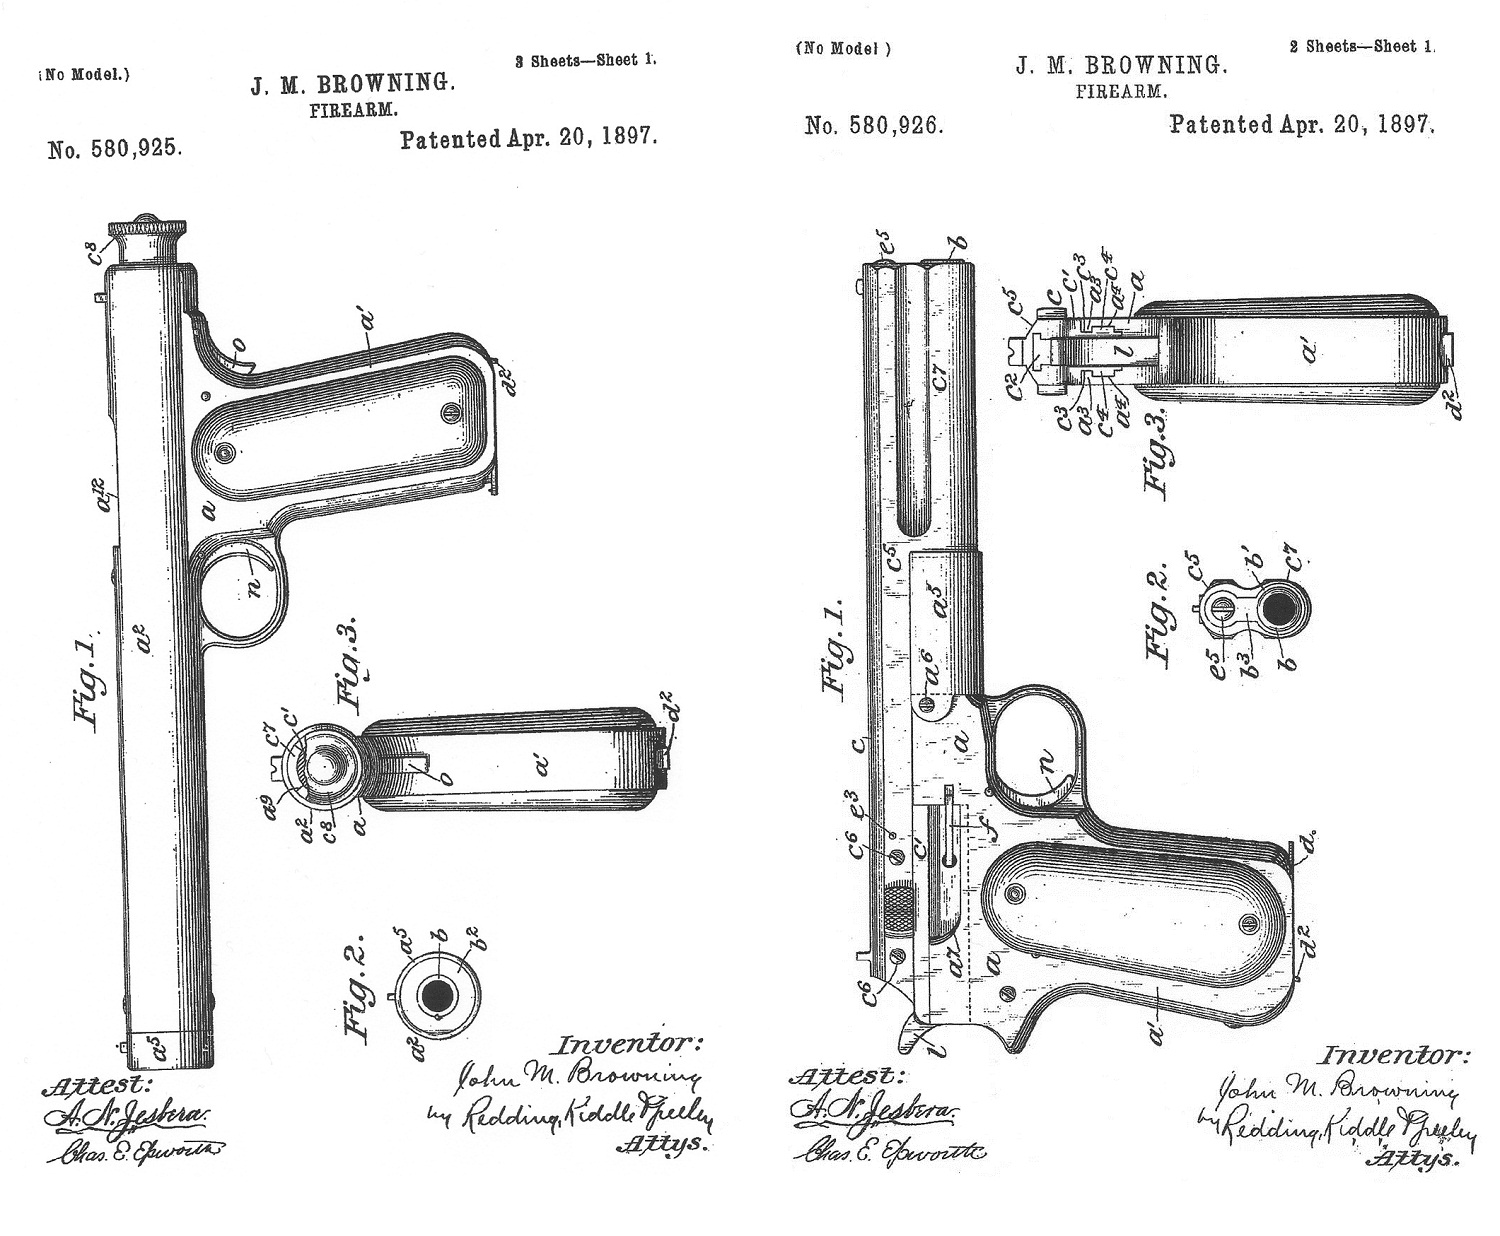 Browning patents